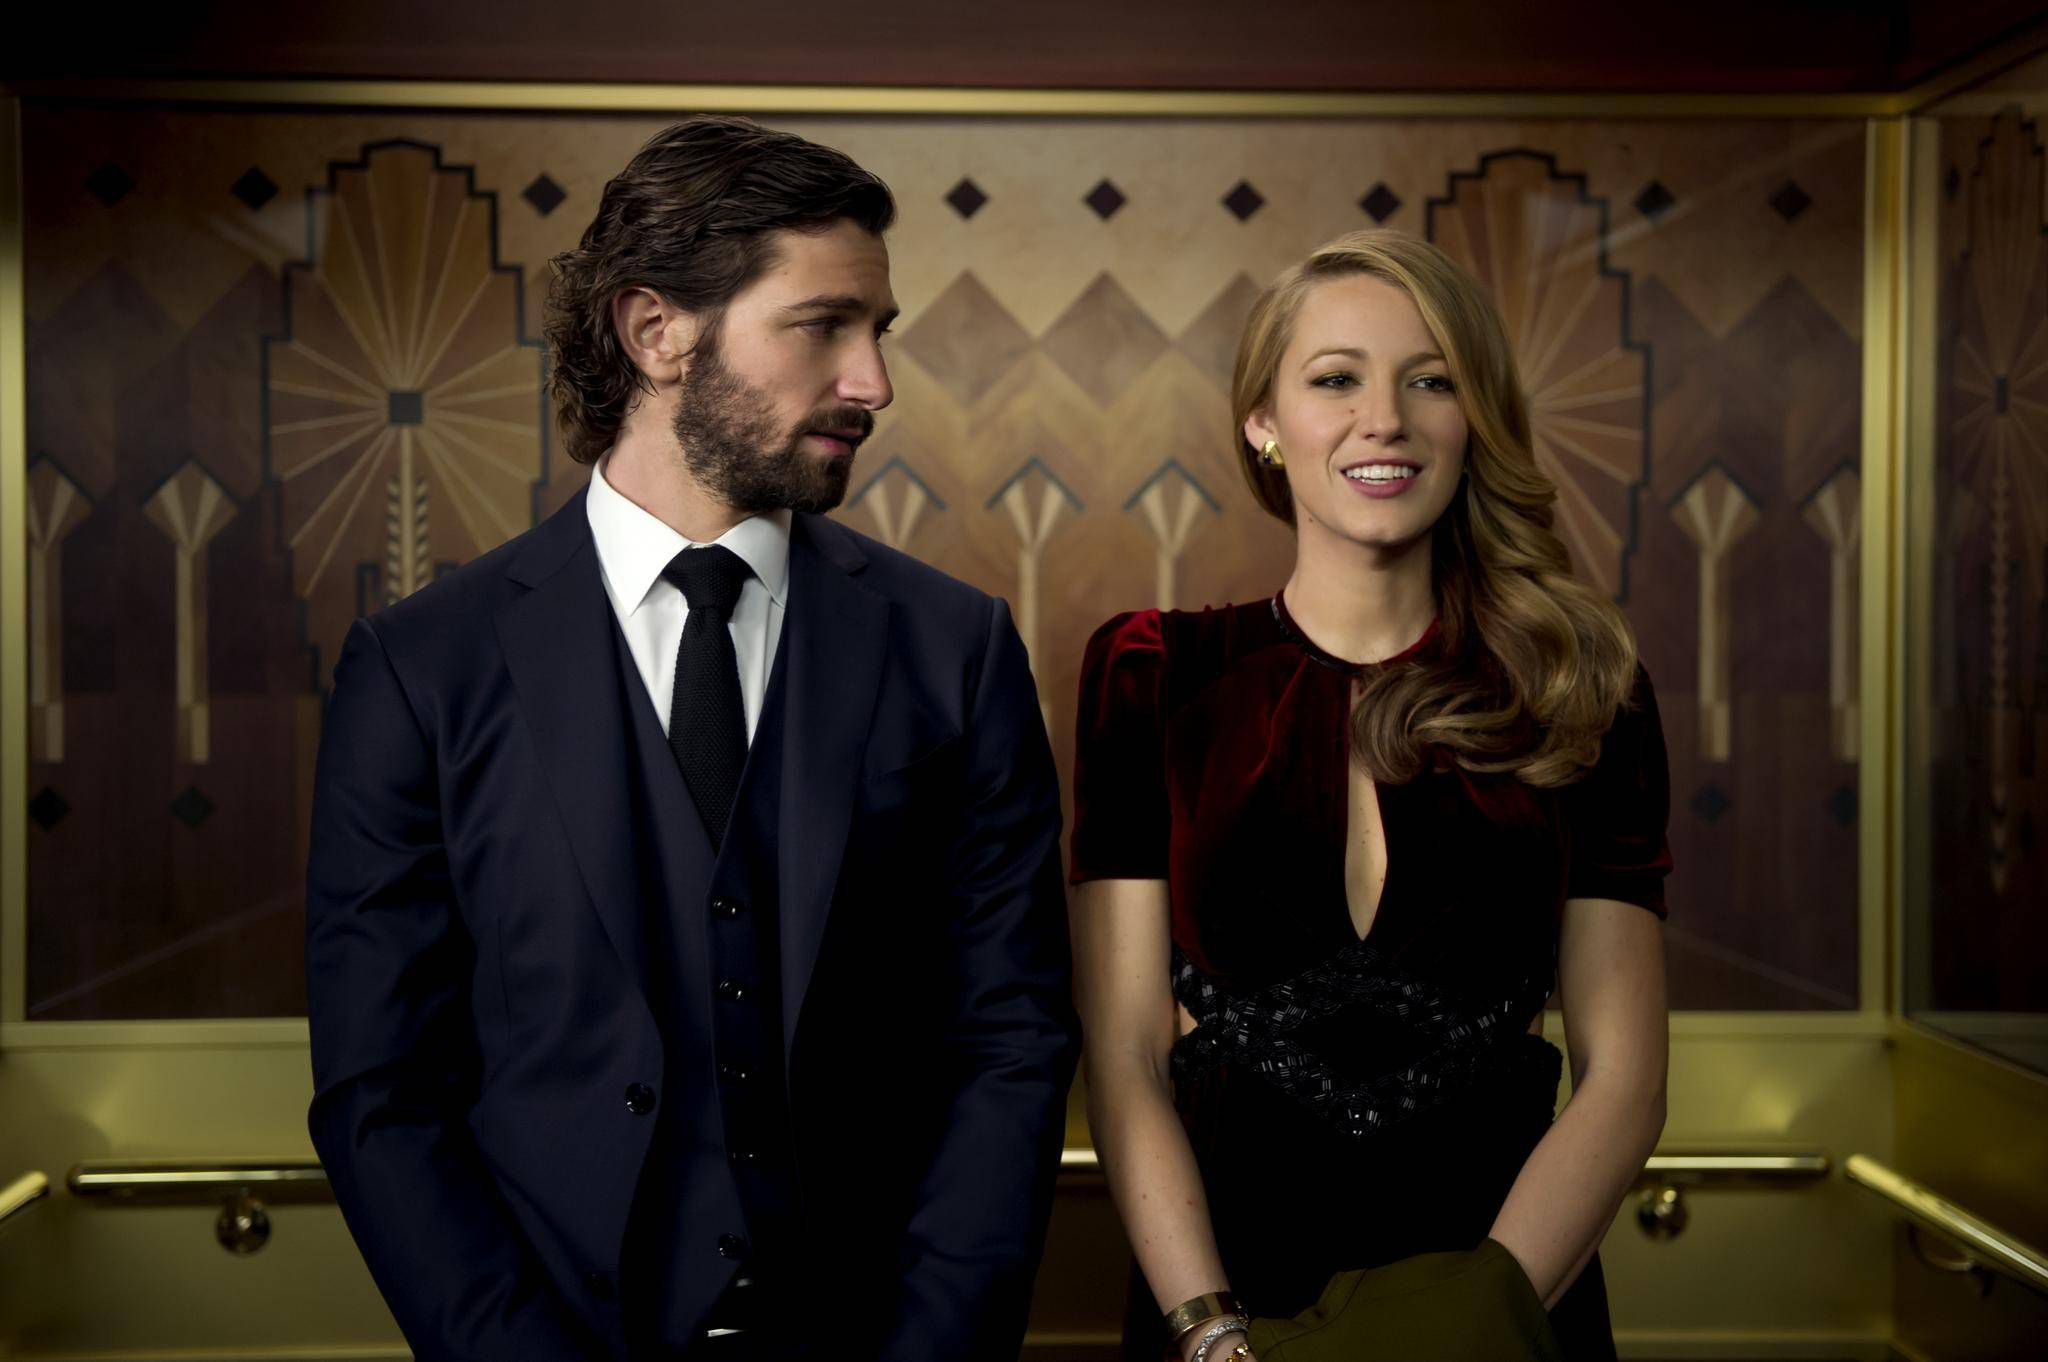 the age of adaline: drawn out romance gets lost in time - the globe